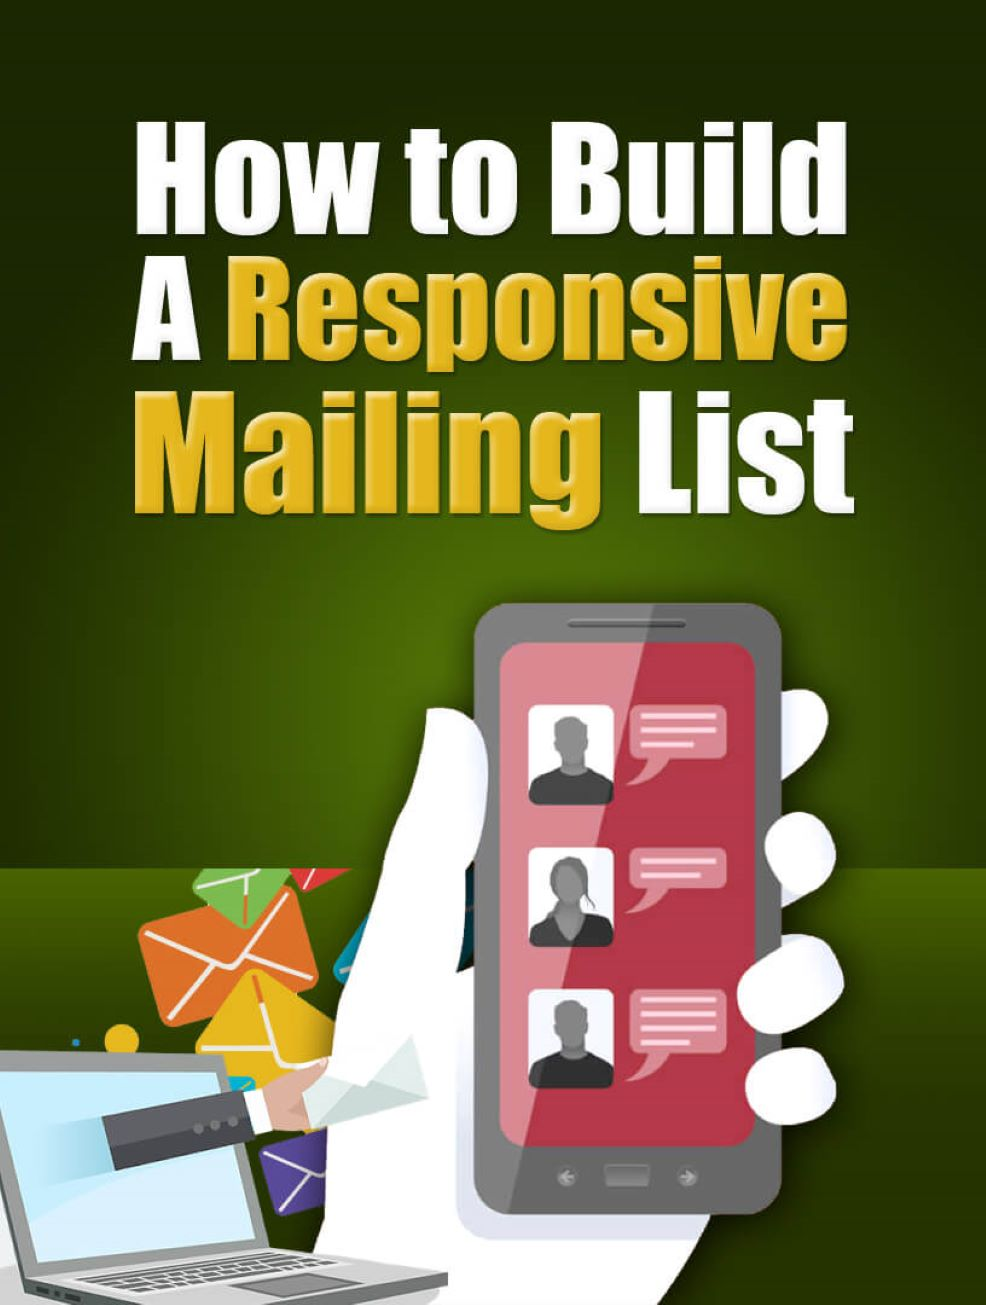 How To Build A Responsive Mailing List